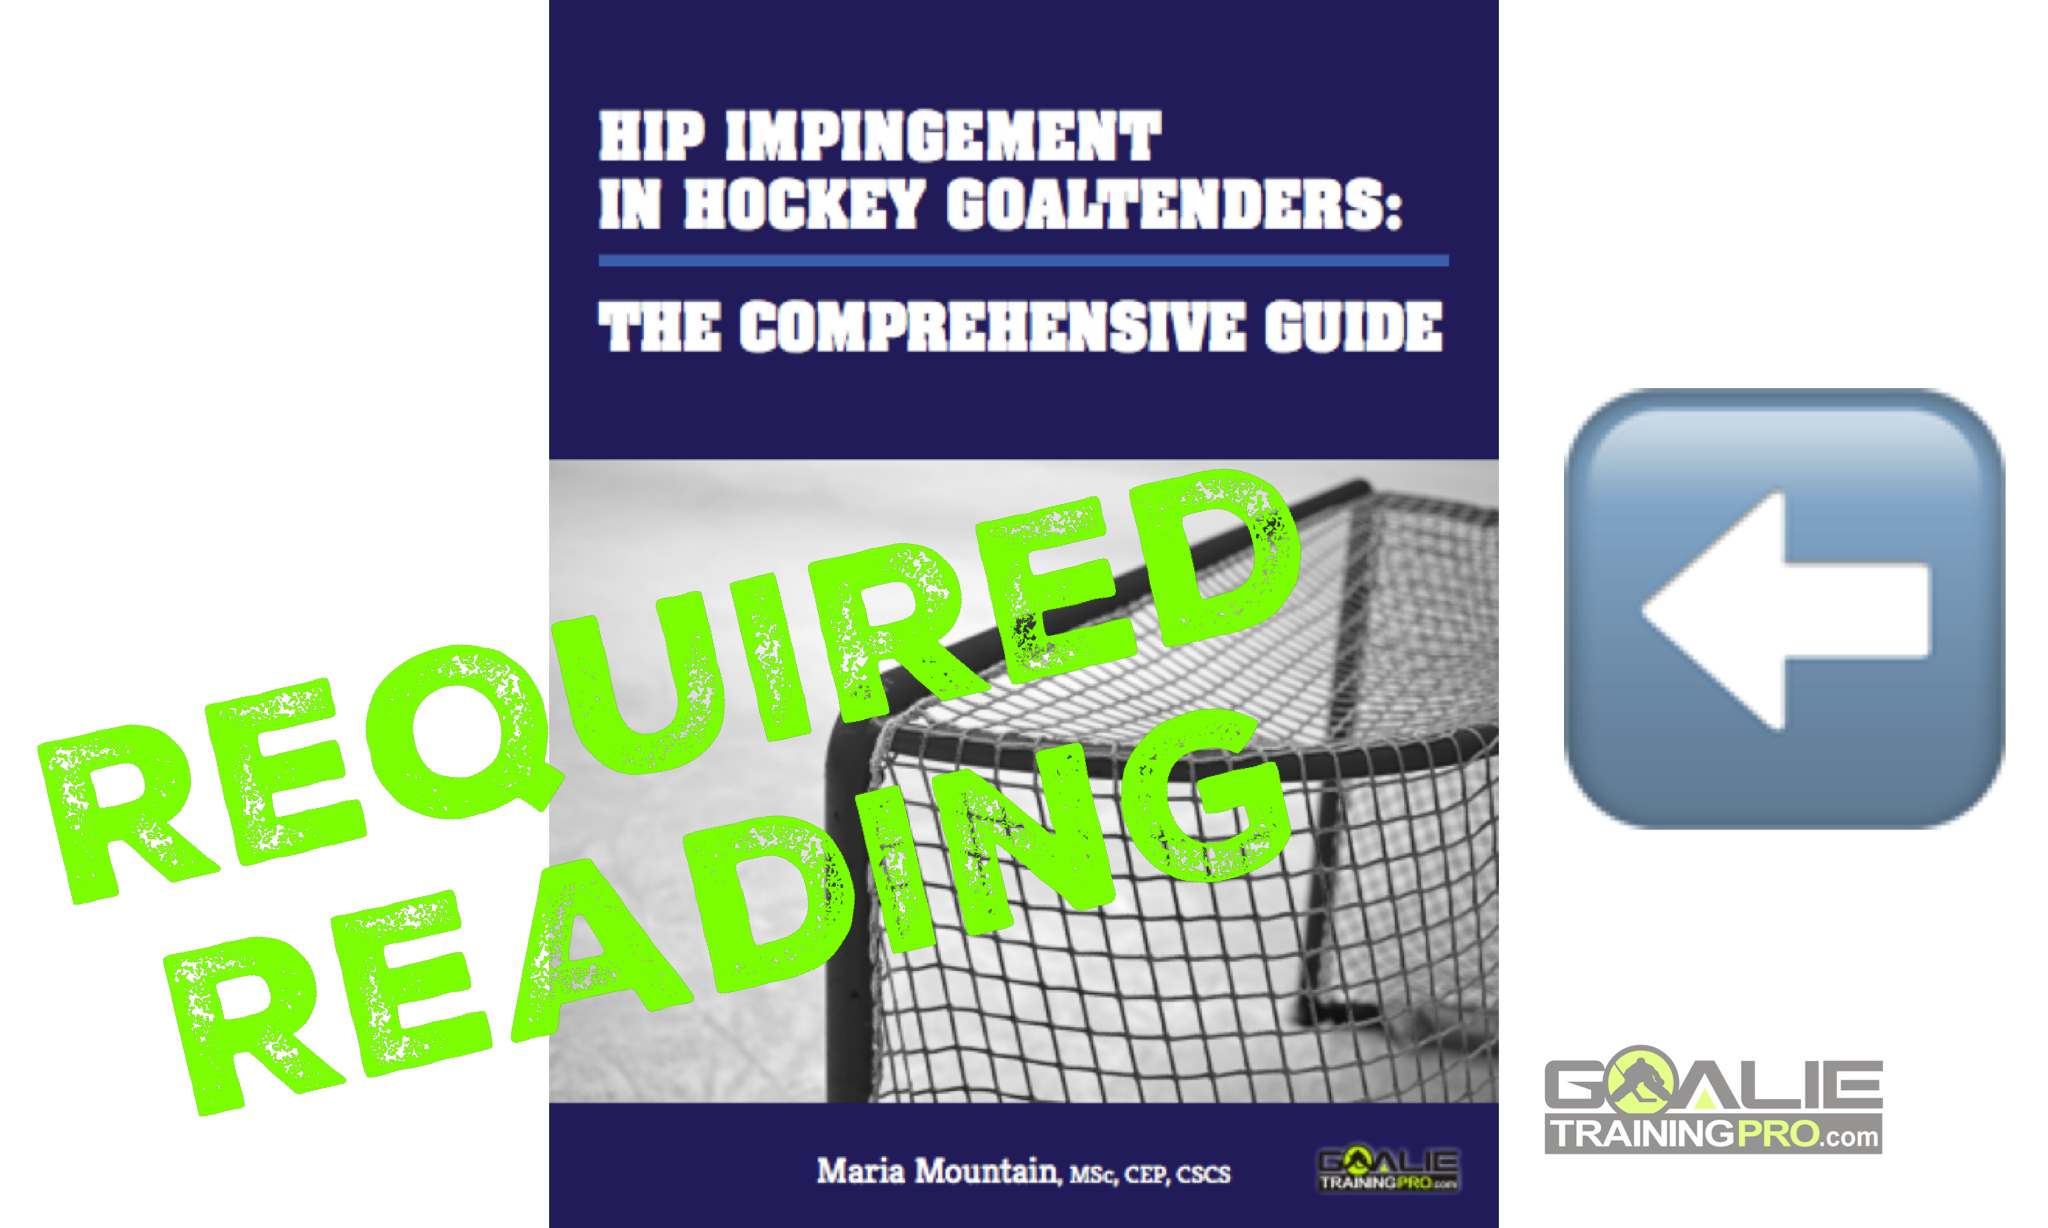 goalie training, hip pain in goalies, hip impingment